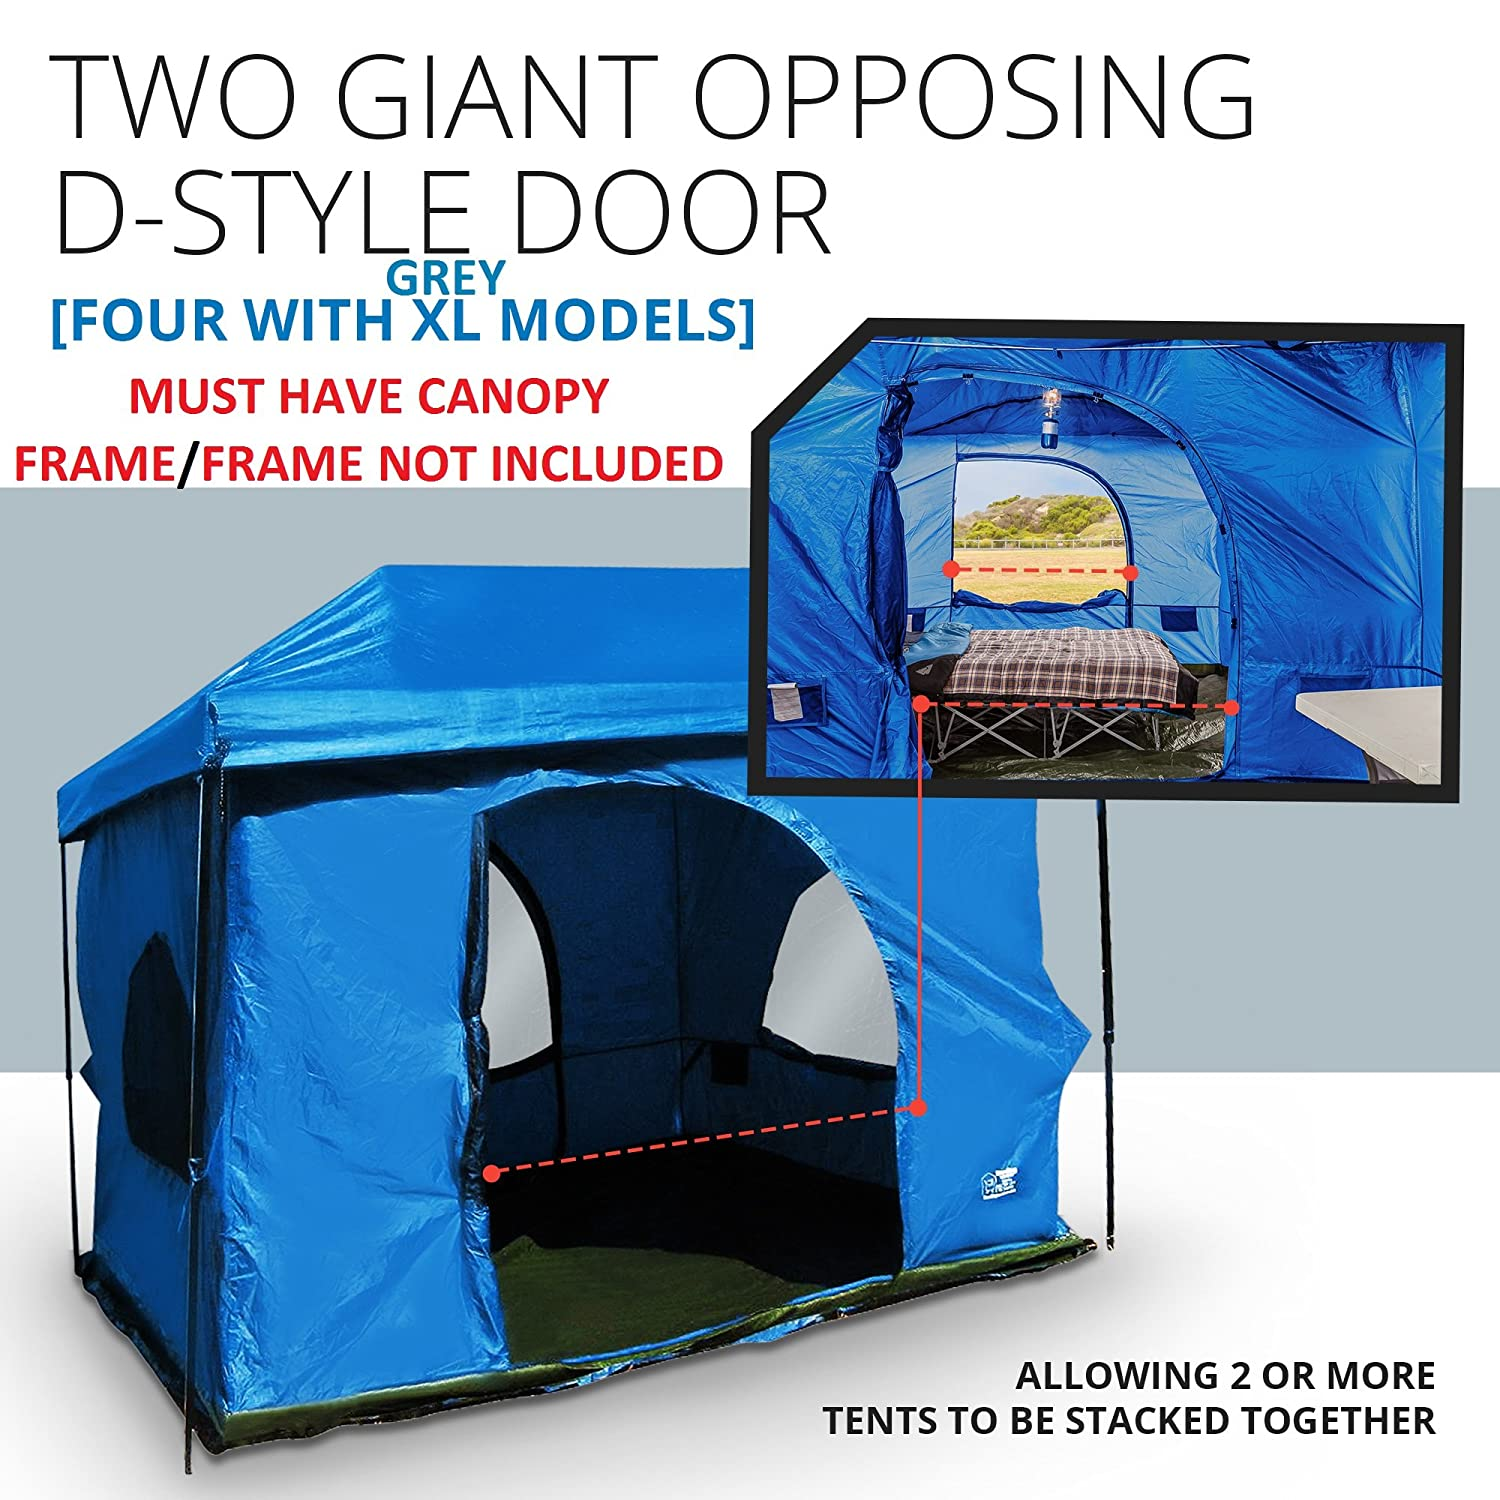 Standing Room Family Cabin Tent 8.5 FEET OF HEAD ROOM 2 or 4 Big Screen Doors & Family Camping Tents | Amazon.com